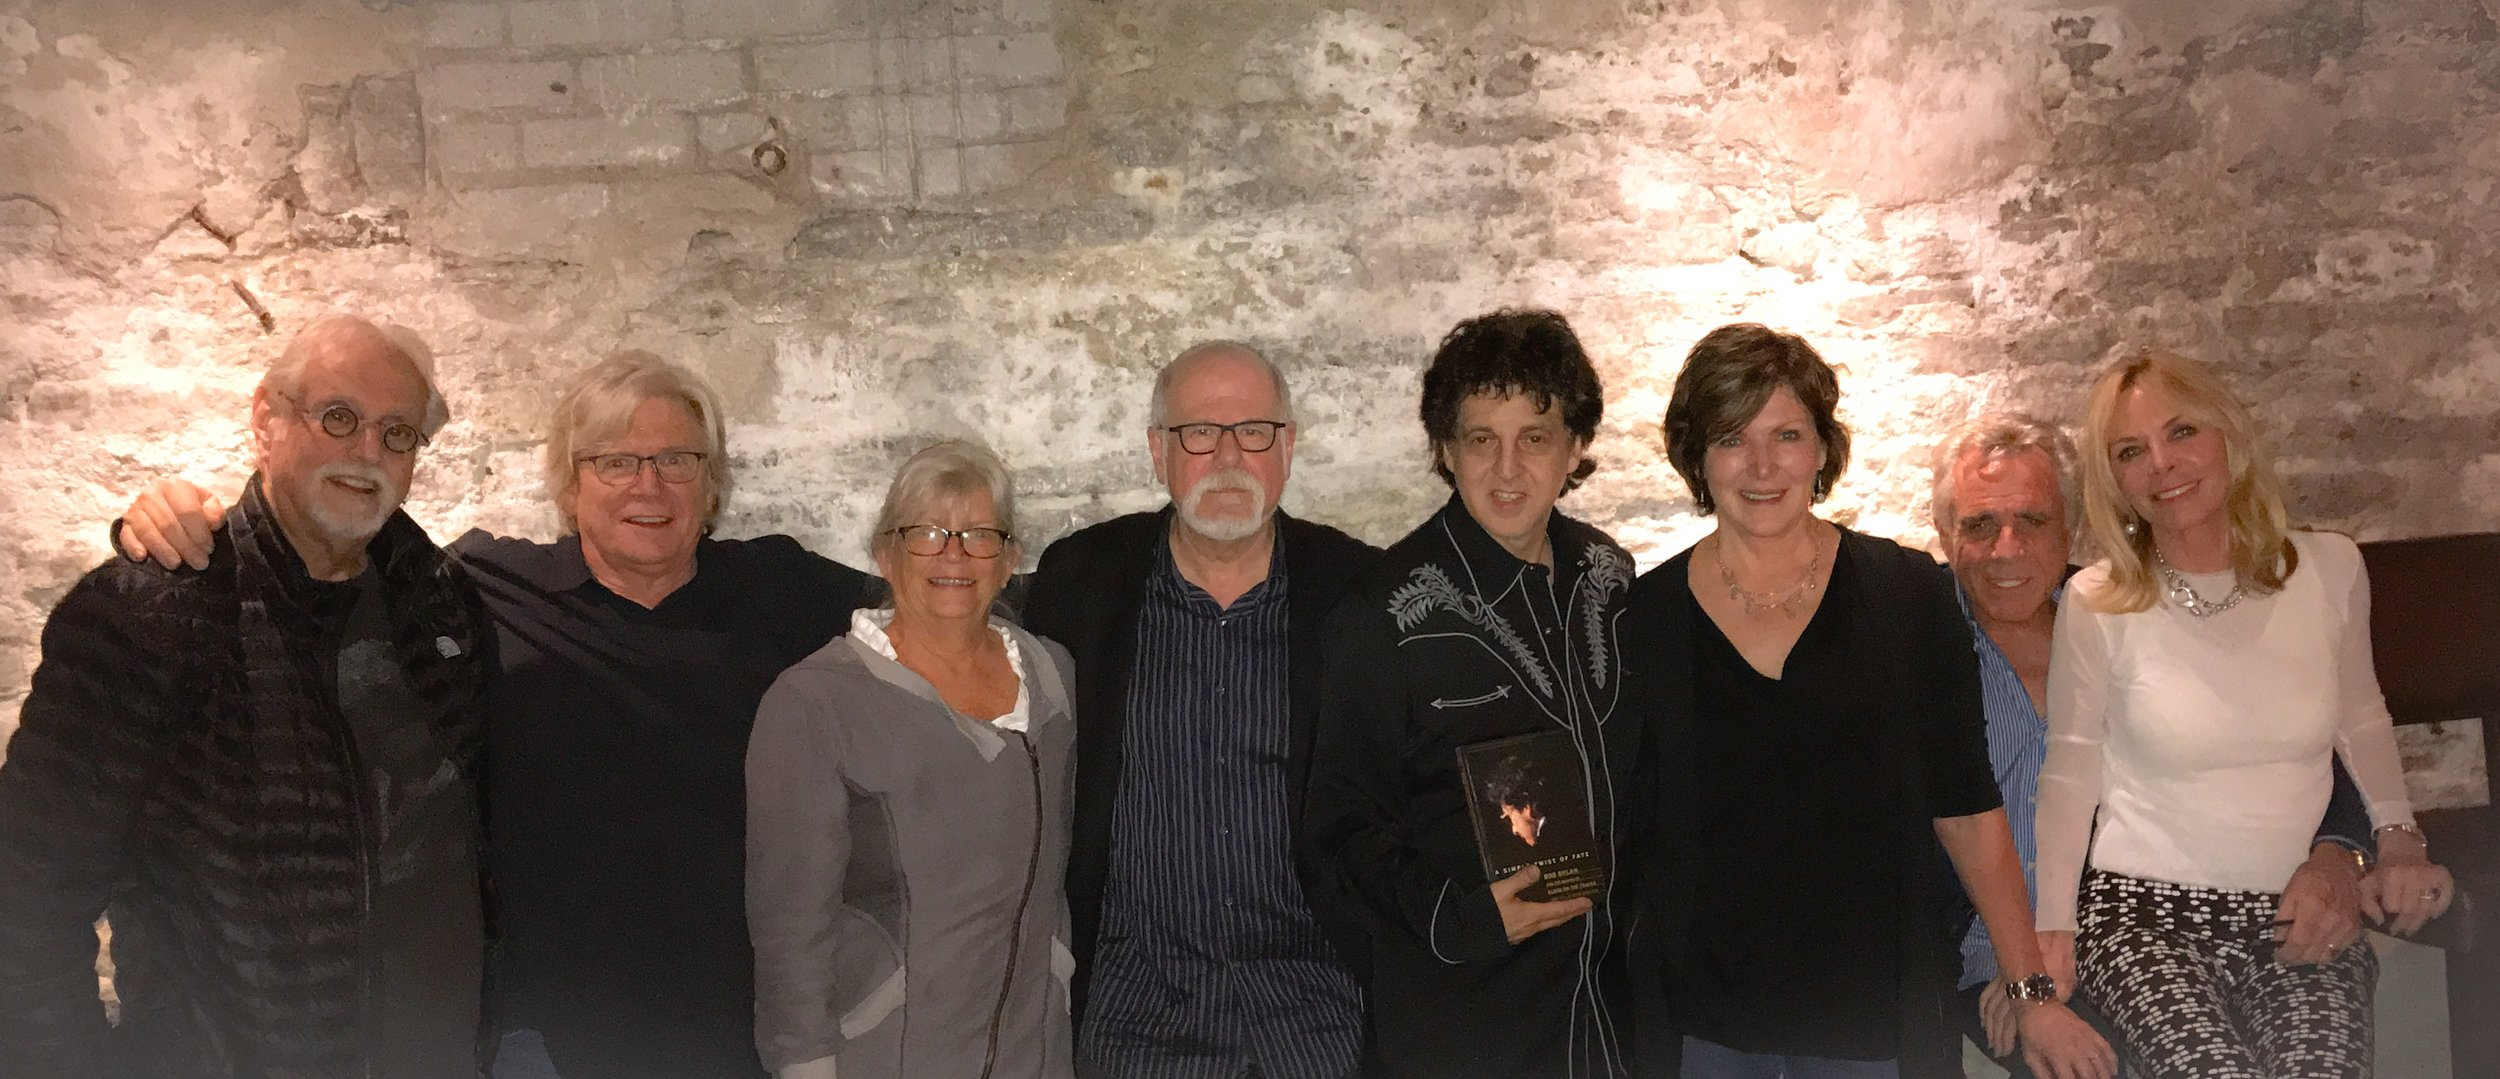 Victor's On Vinyl: Bob Dylan's Blood On The Tracks Dick Cohn, Kevin Odegard, Valerie Cohn, Jon Bream, Magic Marc, Susan Casey, Eric and Karen Paulson / The Lounge at Victors On Water / Excelsior, Minnesota / May 25th, 2017